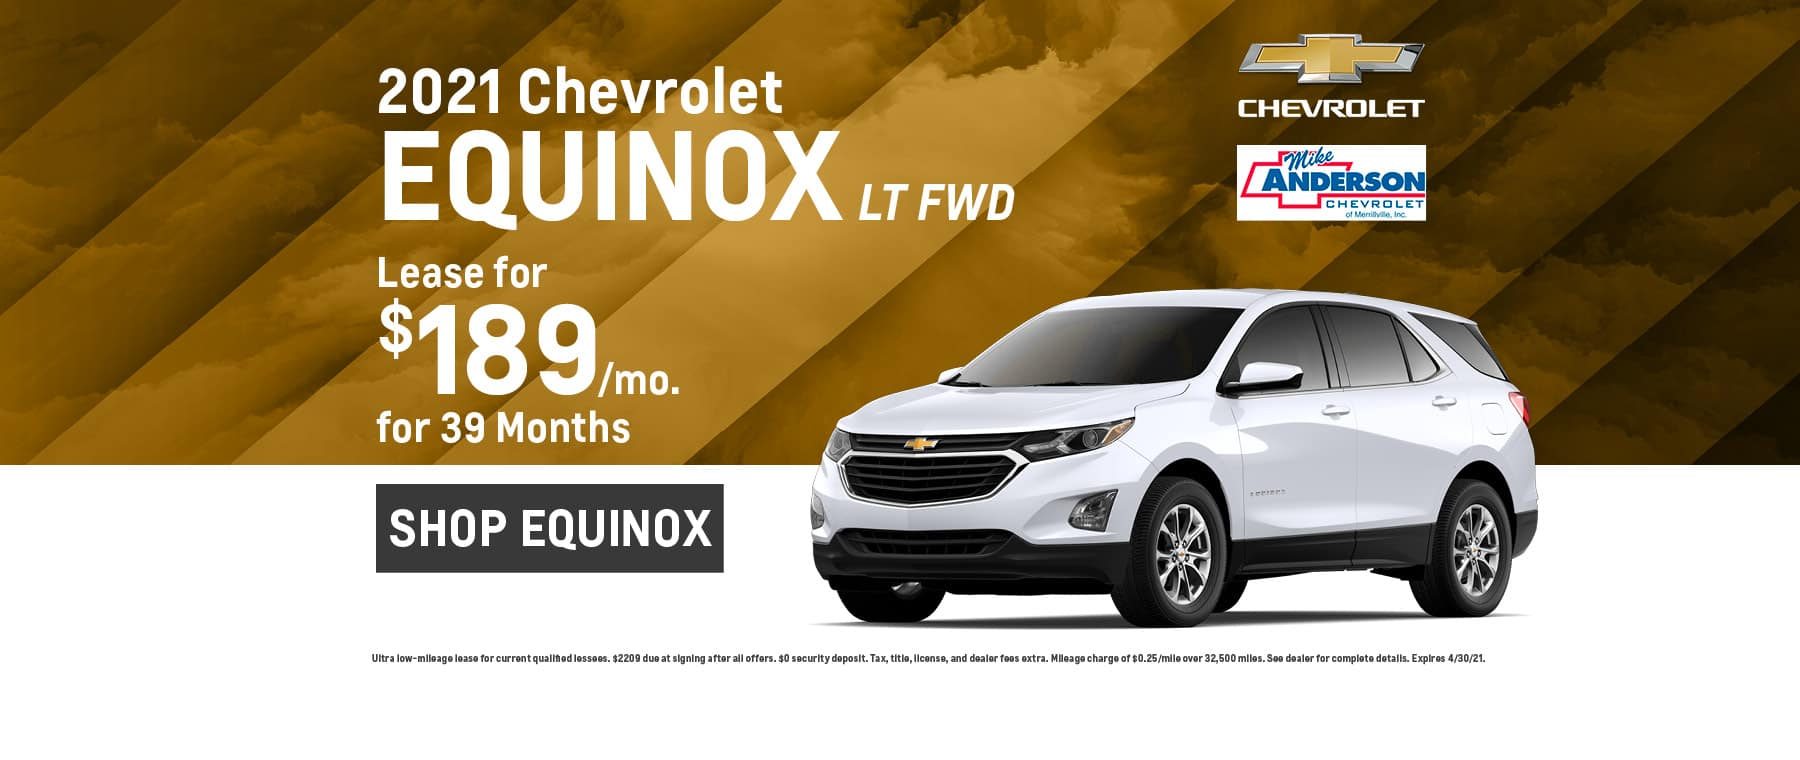 2021 Chevrolet Equinox LT FWD Lease